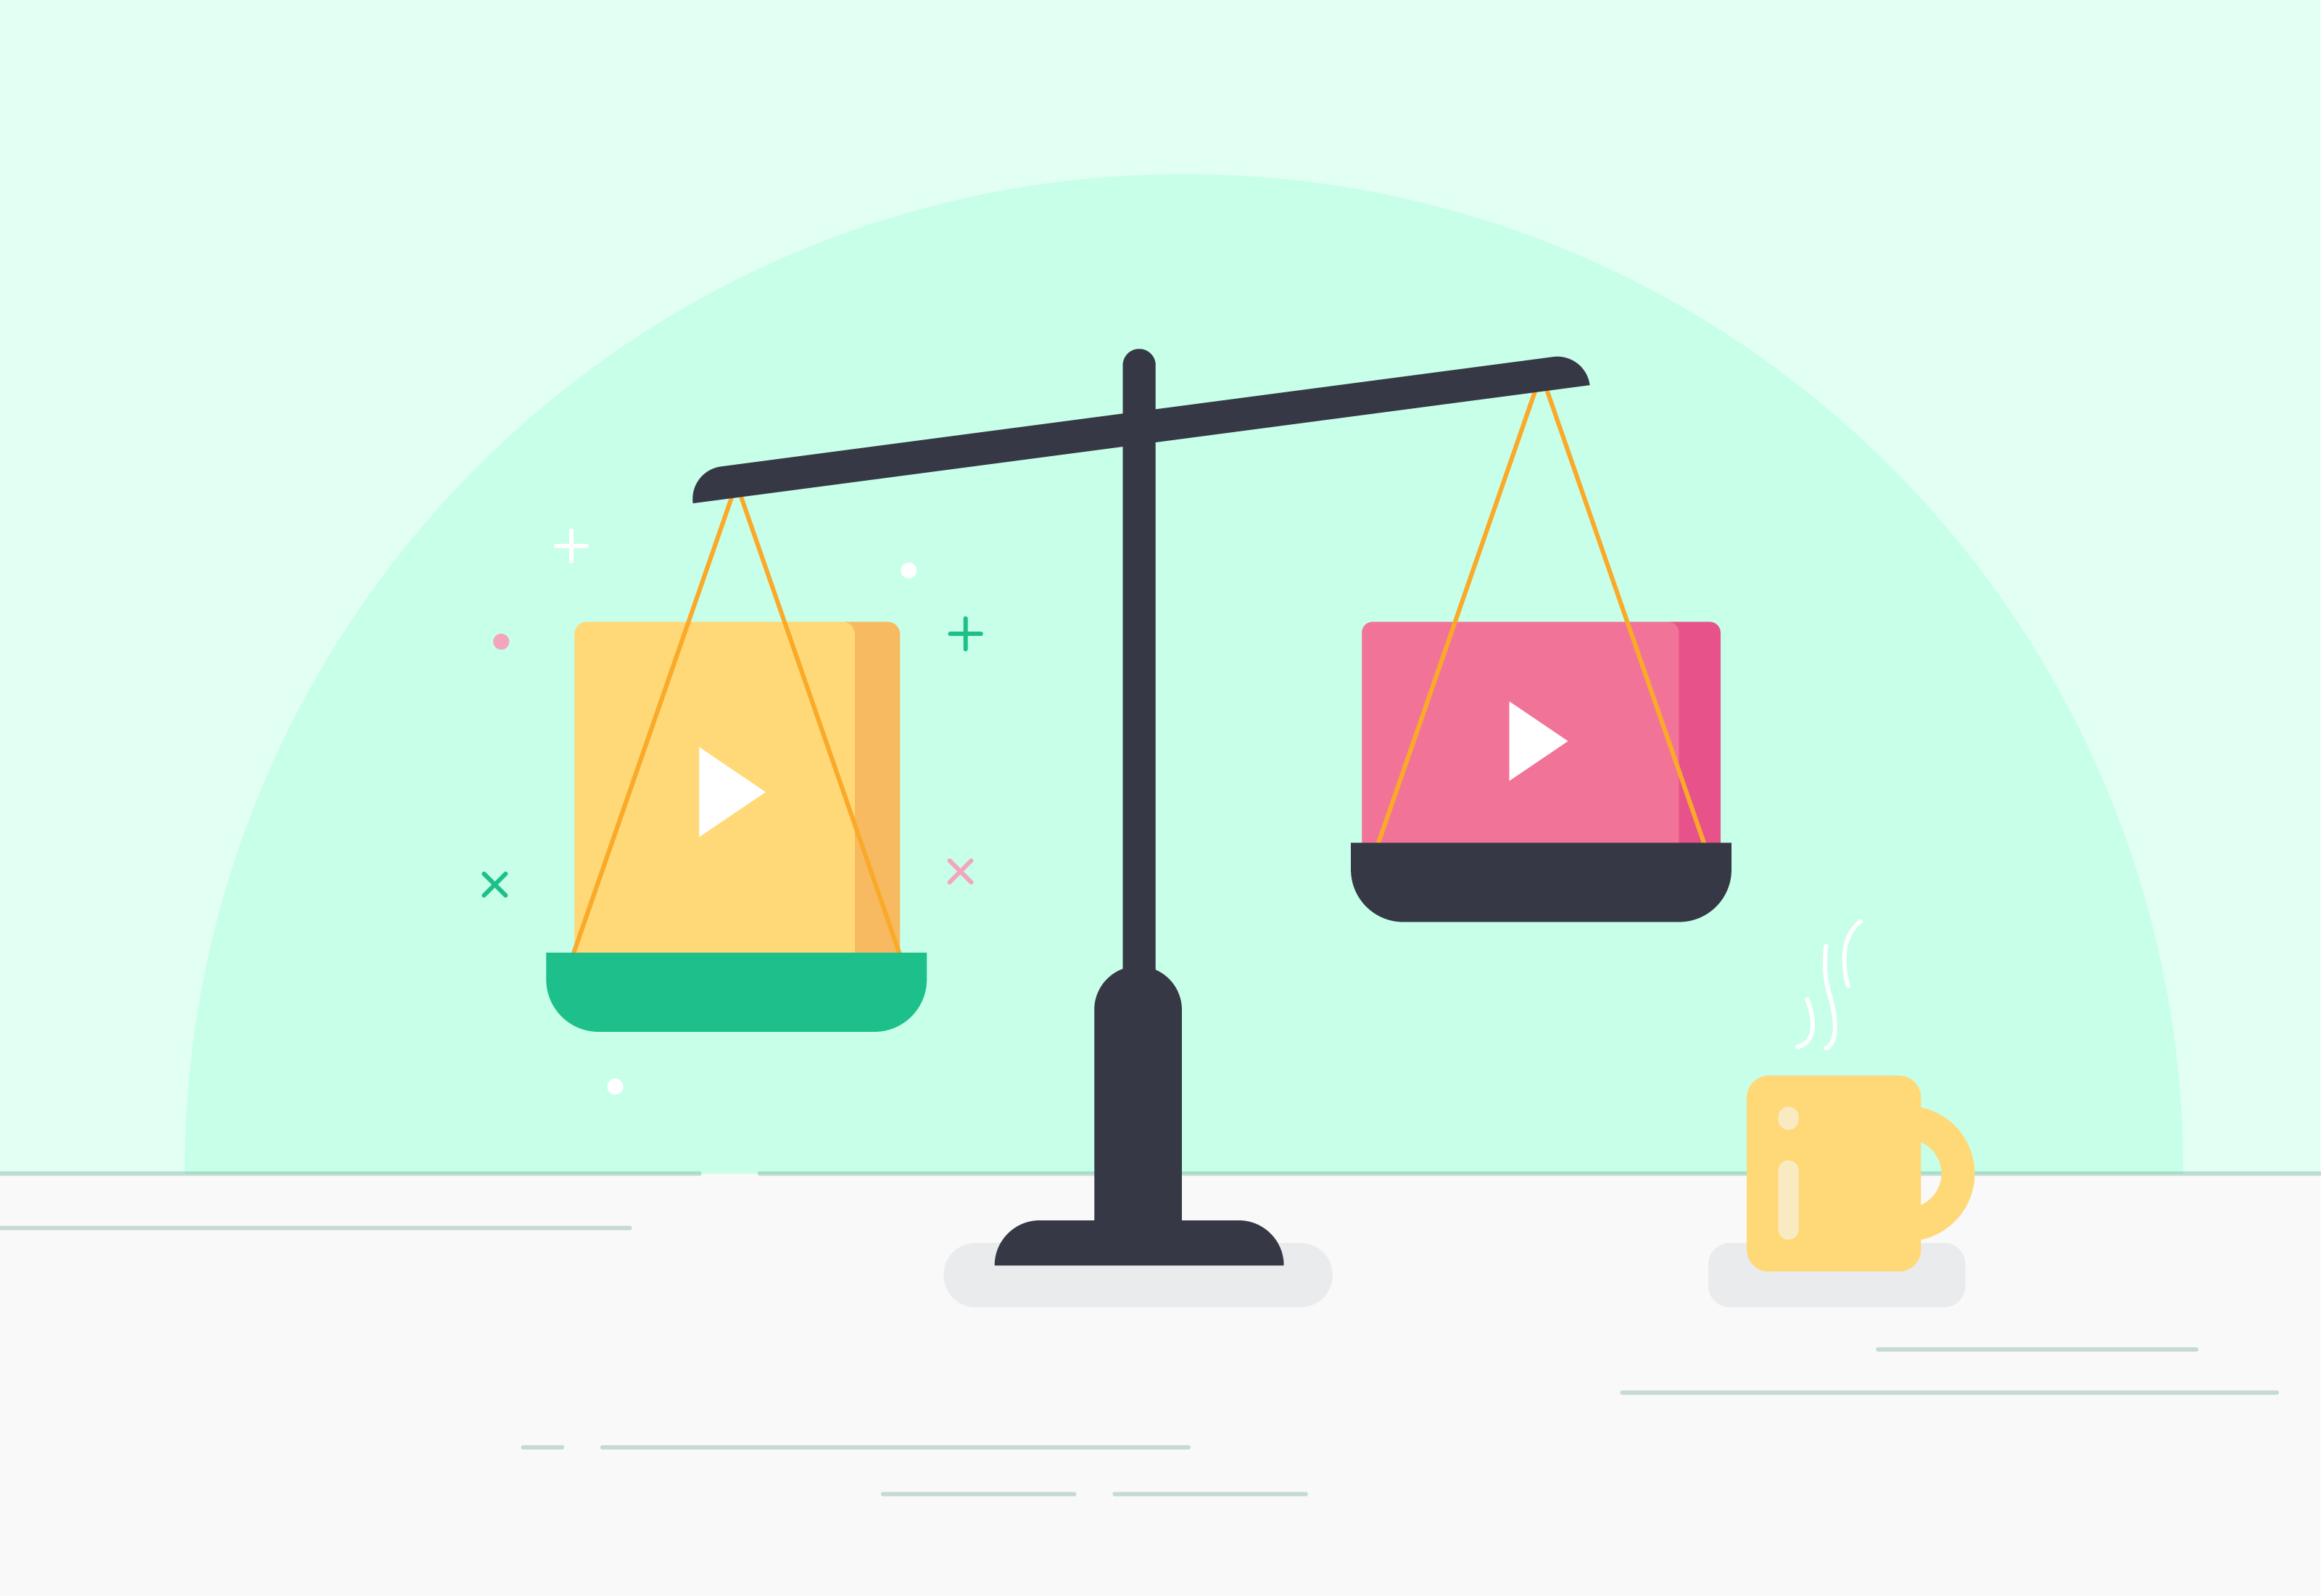 New! Start A/B Testing Your Videos in Wistia